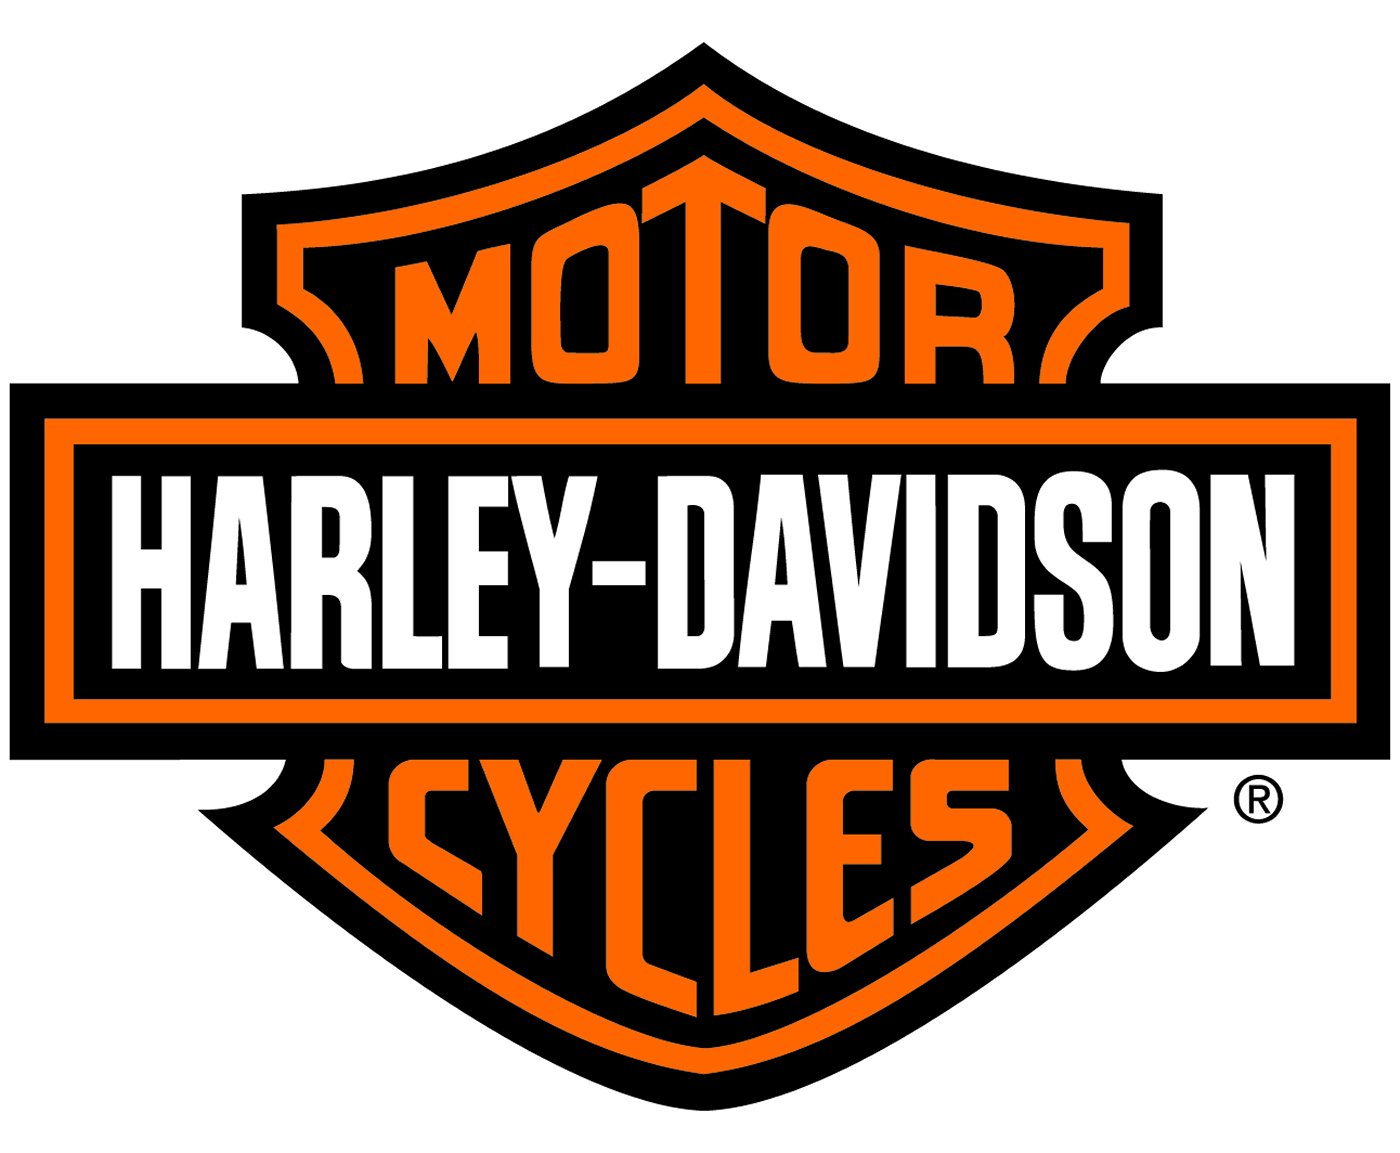 Harley Davidson Logo With Flames Drawings Images